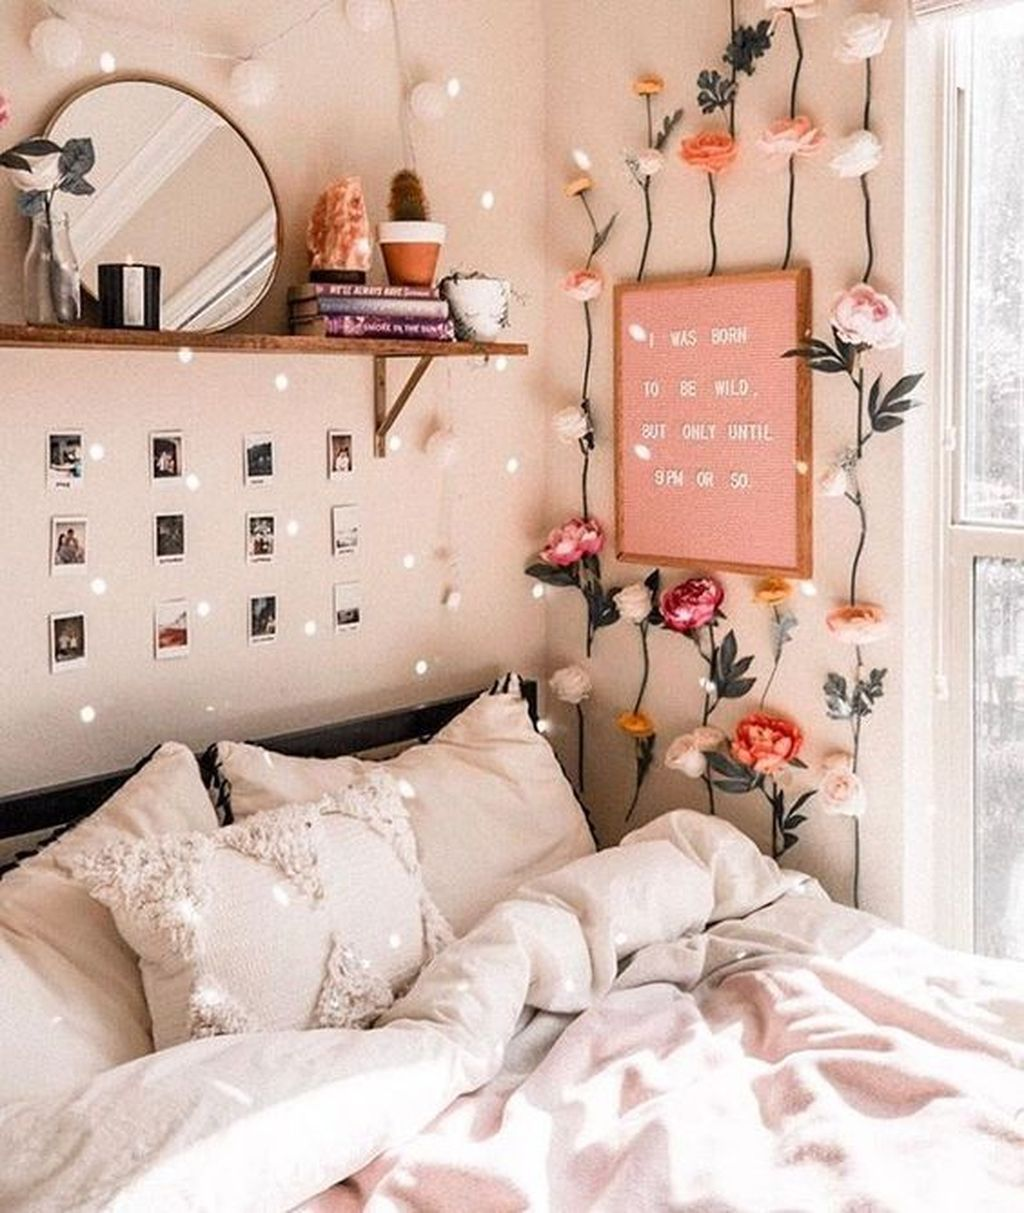 32 The Best Diy Bedroom Decor Ideas You Have To Try In 2020